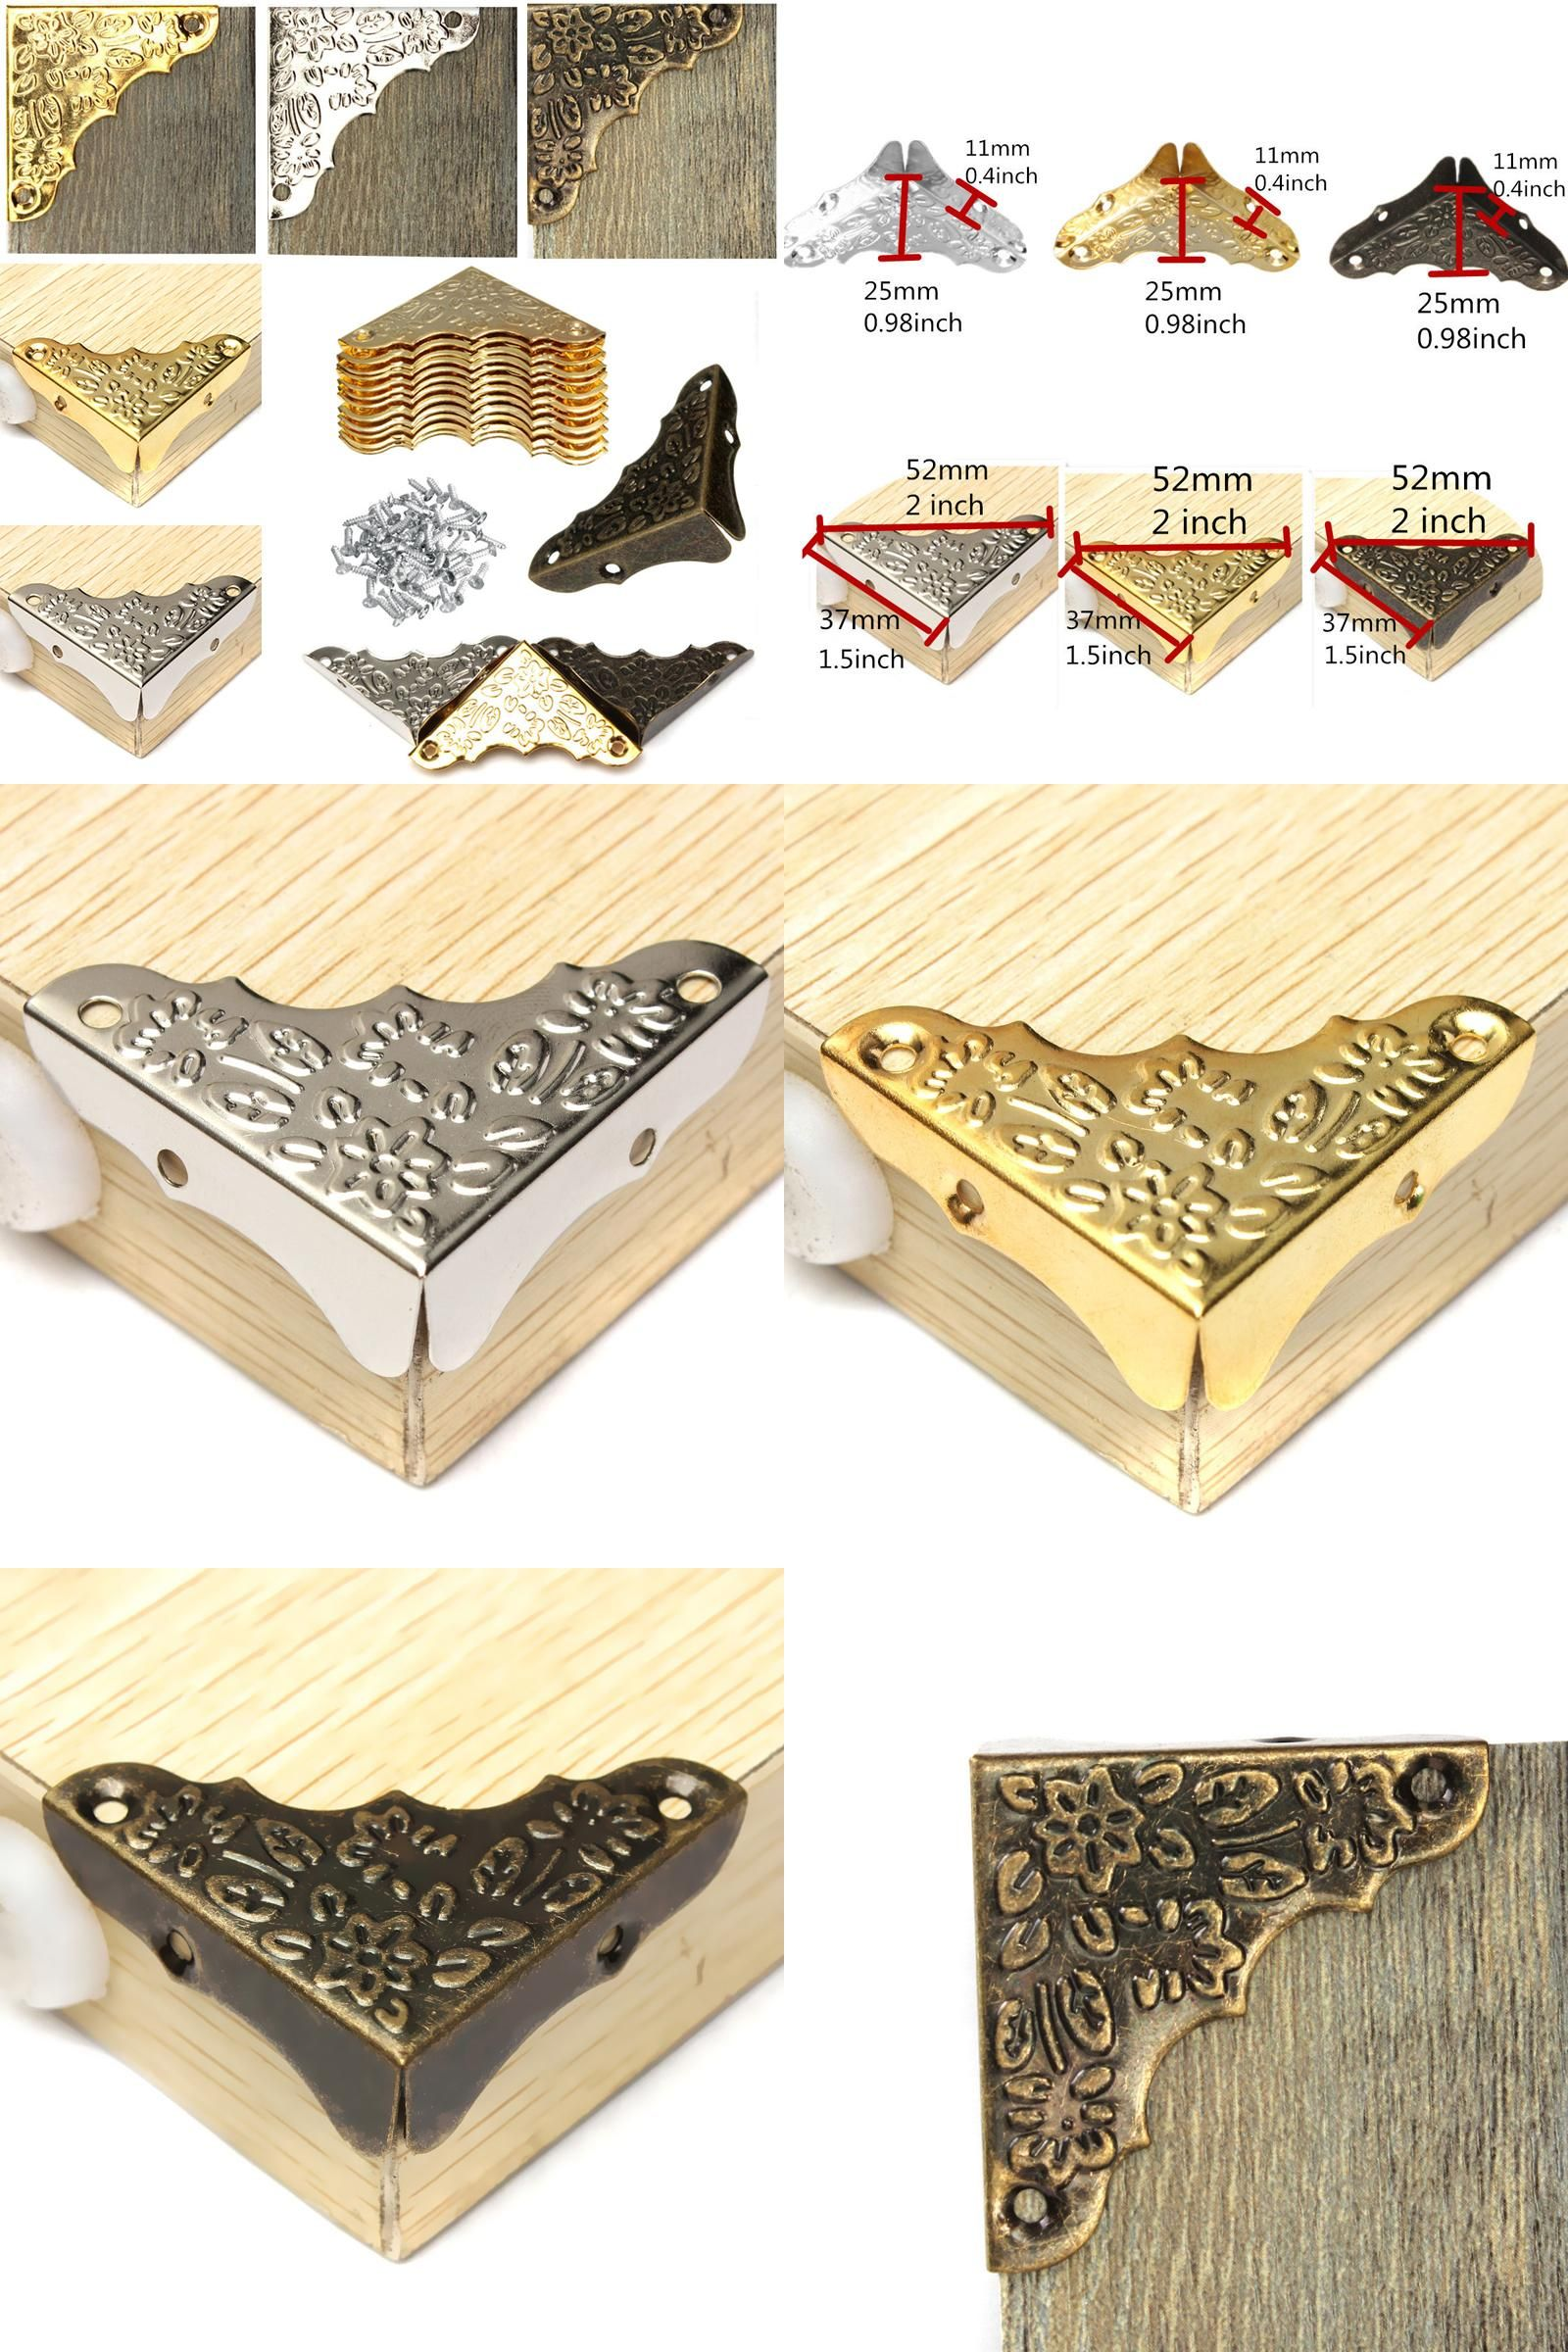 Visit to Buy] Antique Jewelry Corner Protector Wooden Box Frame Feet ...